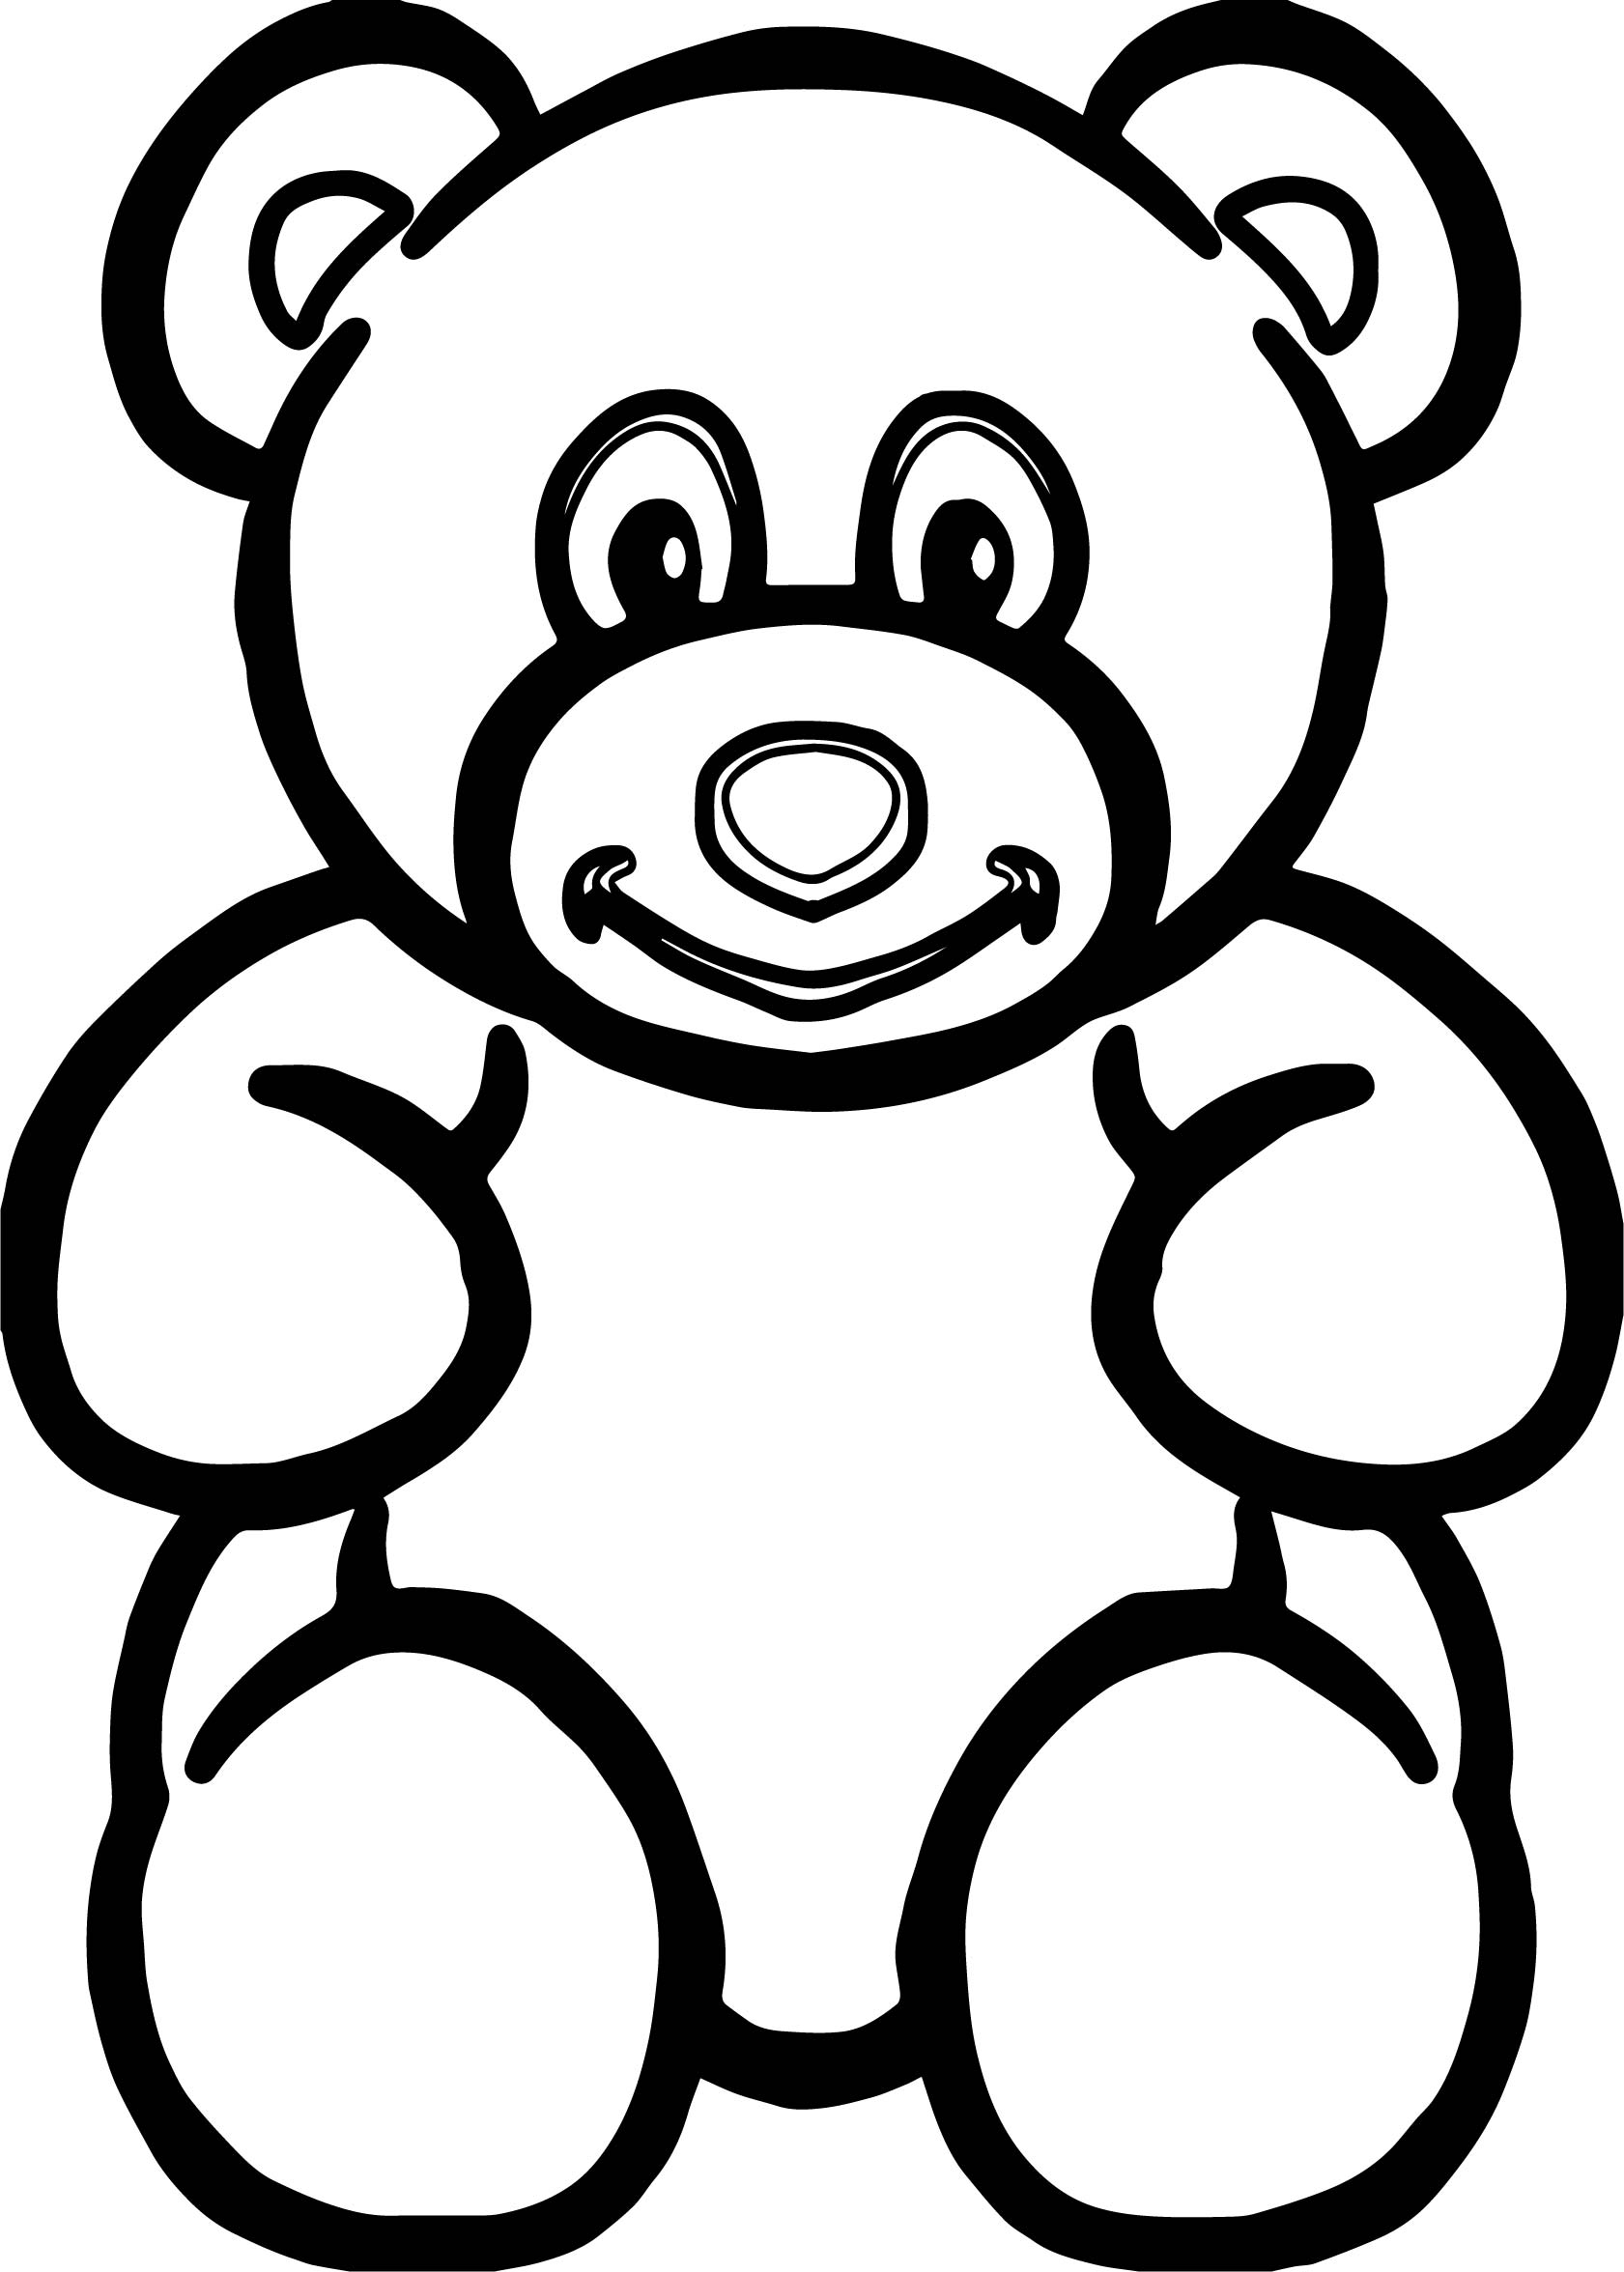 bold line coloring pages | Bear Bigger Front View Bold Line Coloring Page ...